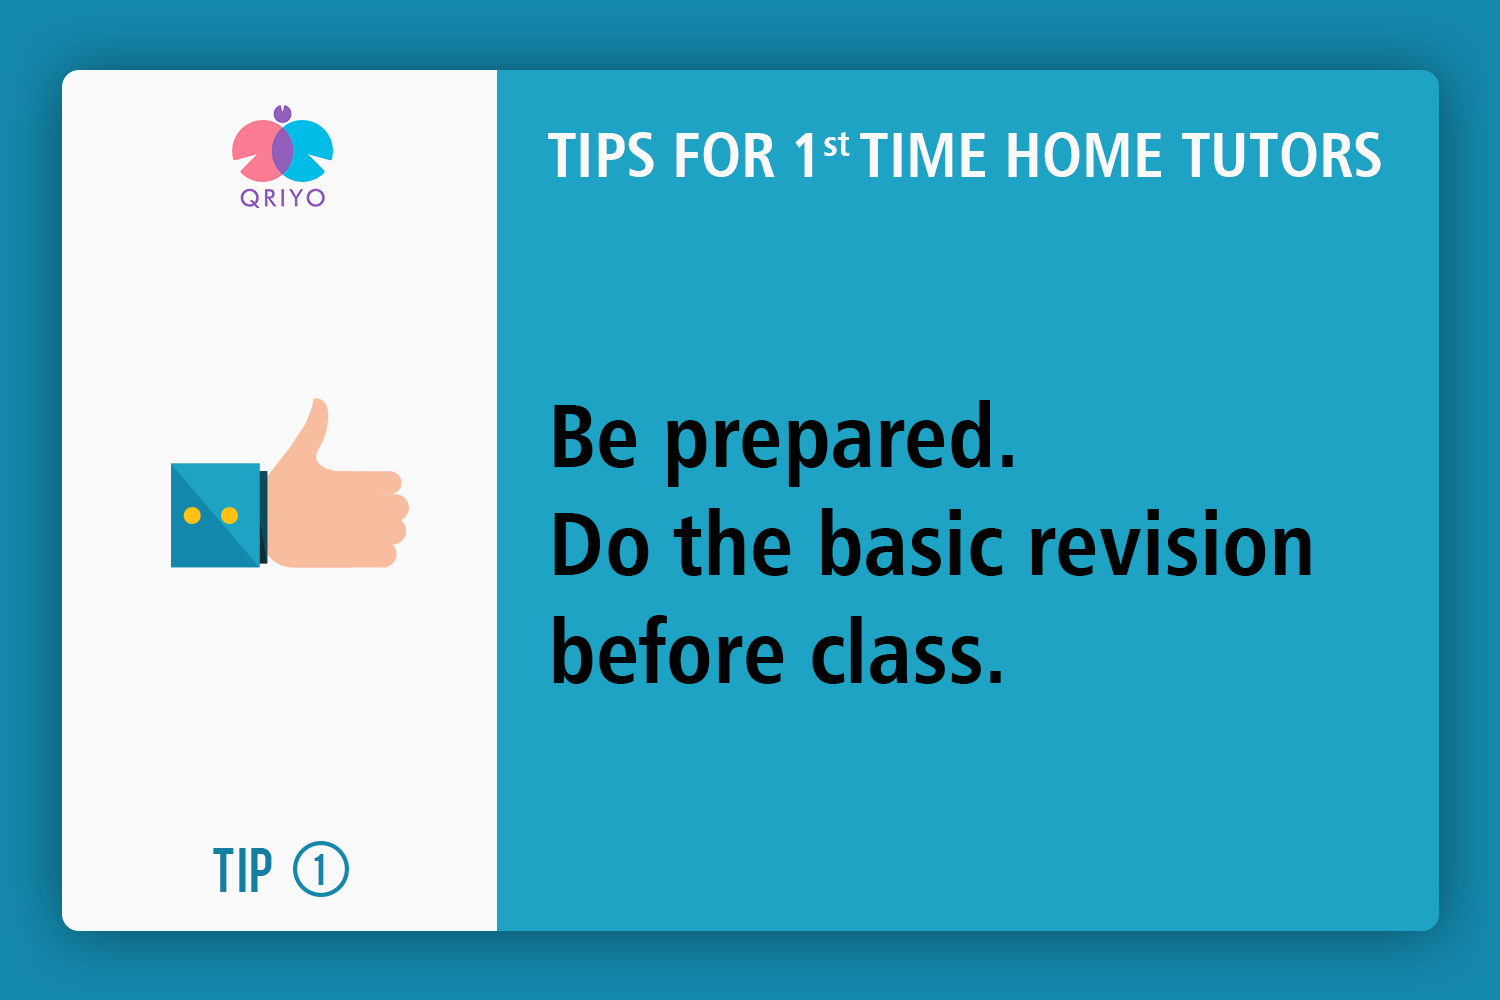 Be prepared.Do the basic revision before class.